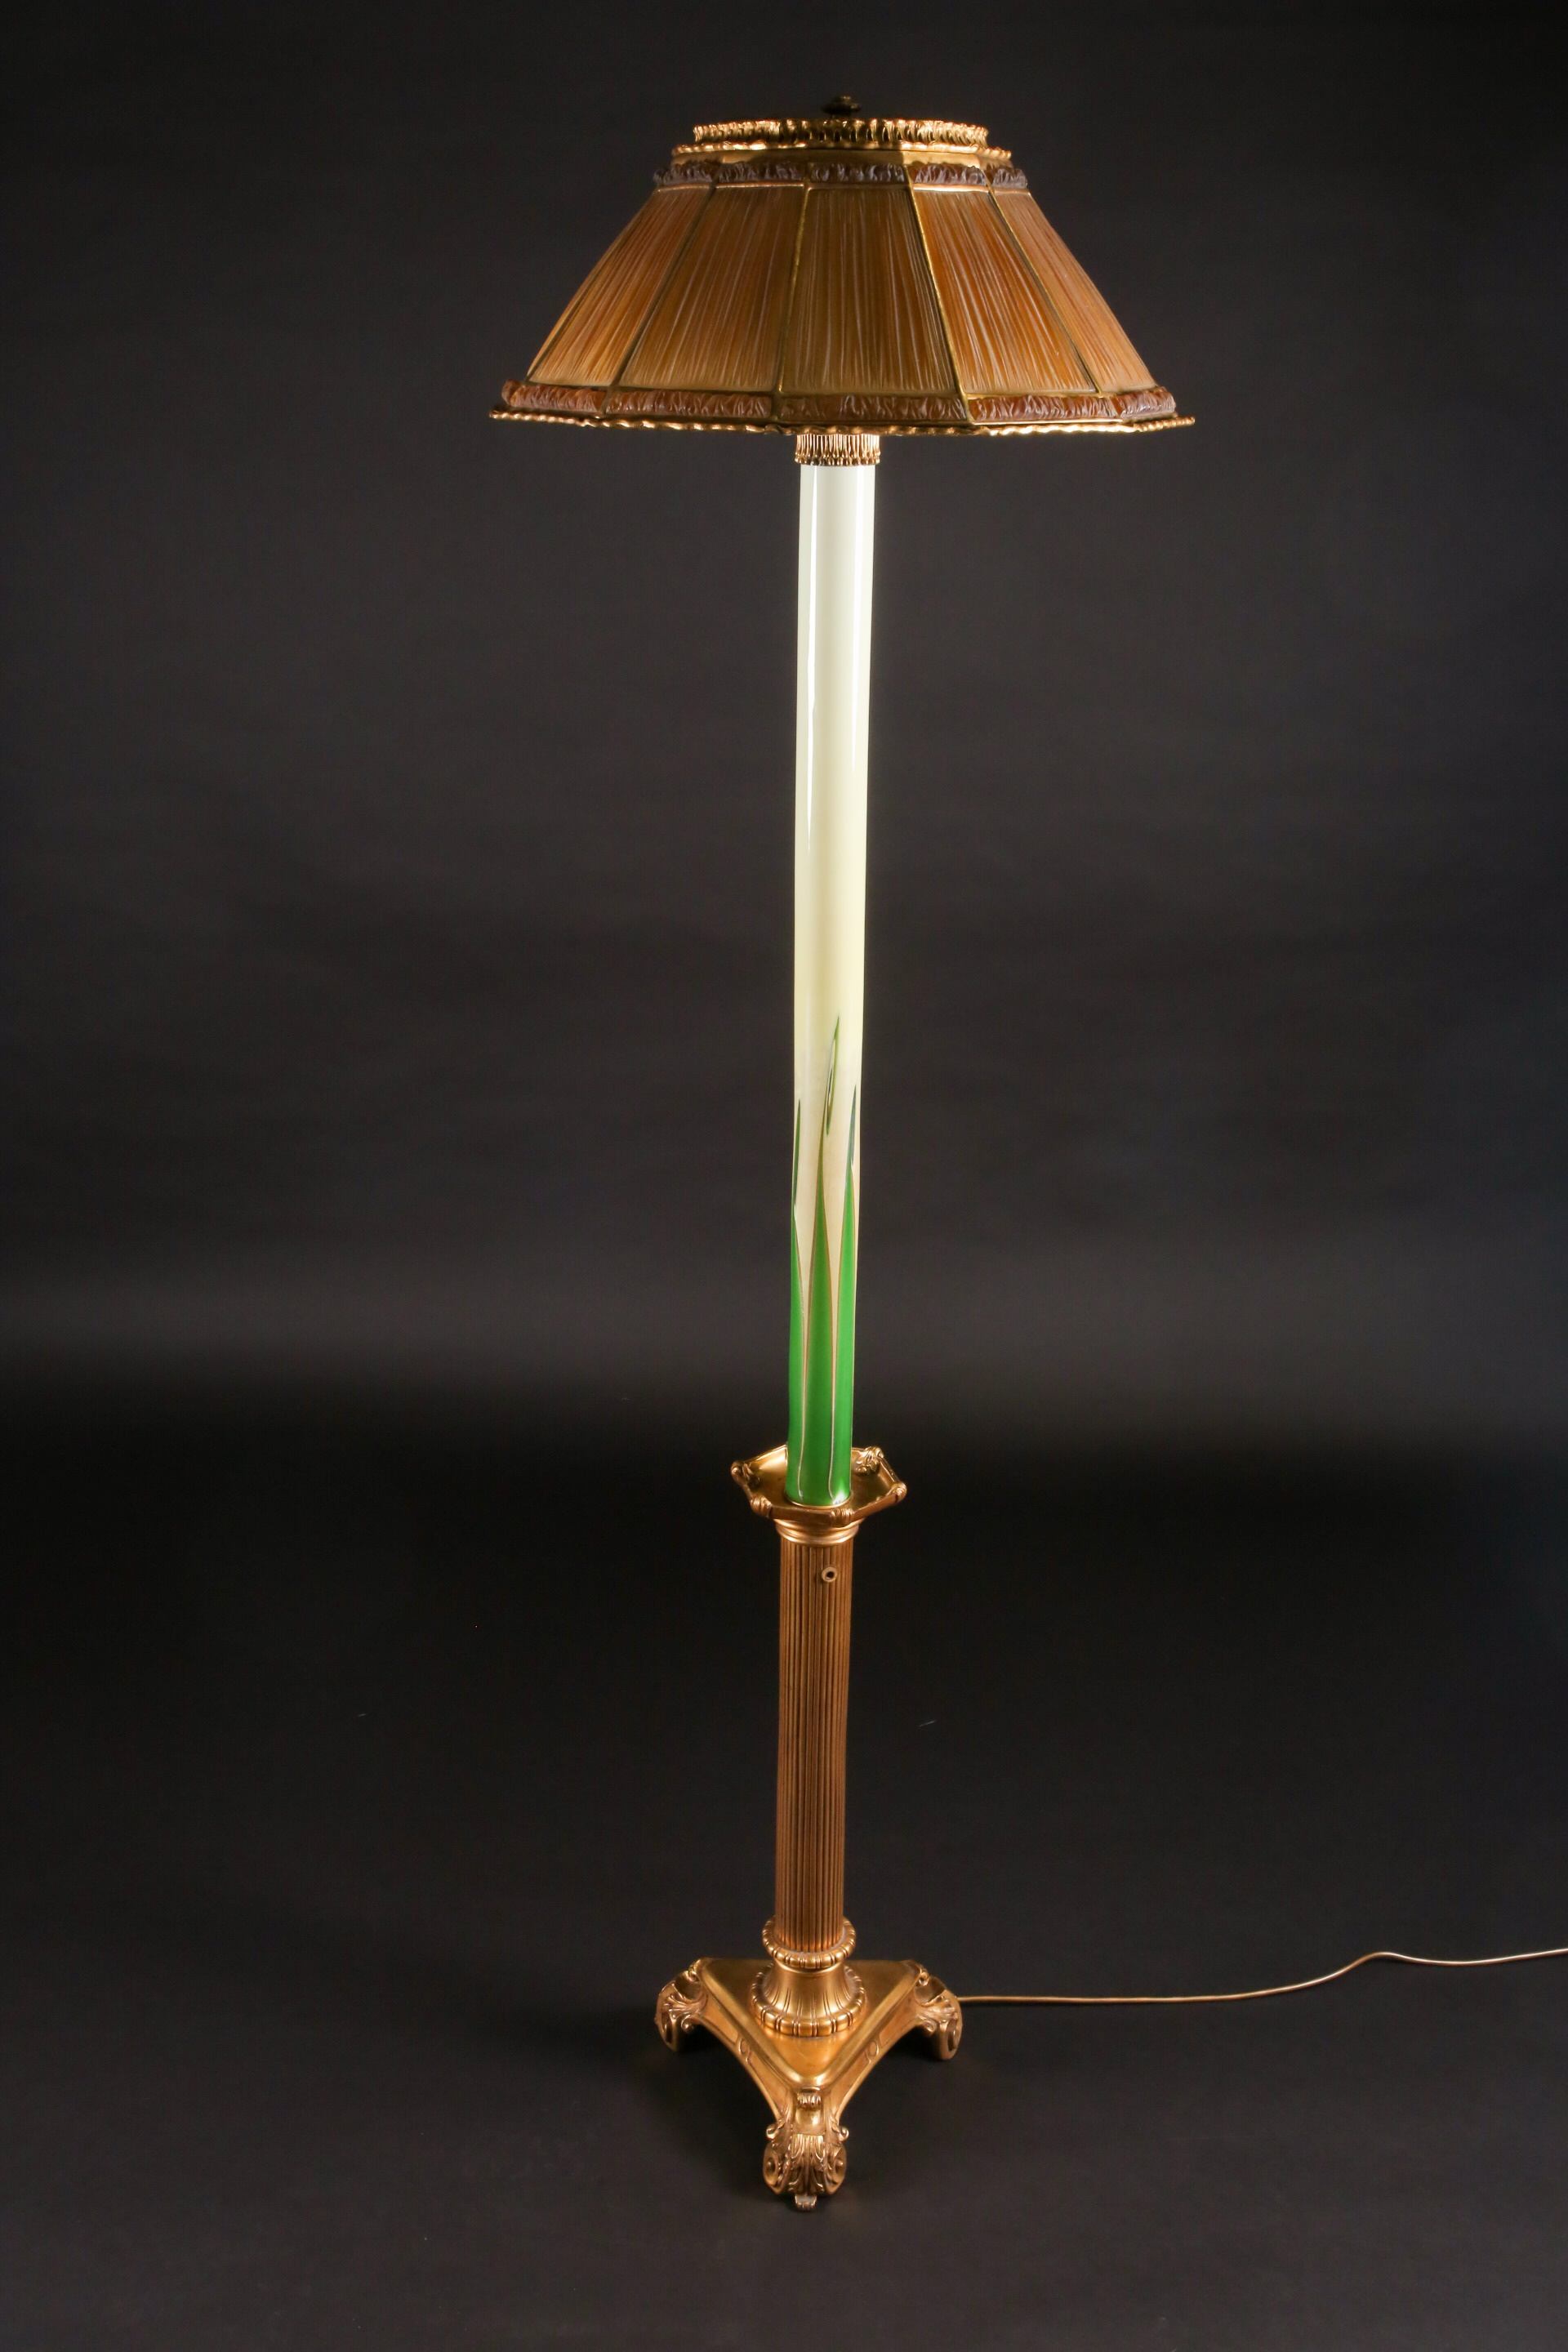 A Tiffany & Co moulded glass and gilt bronze mounted standard lamp